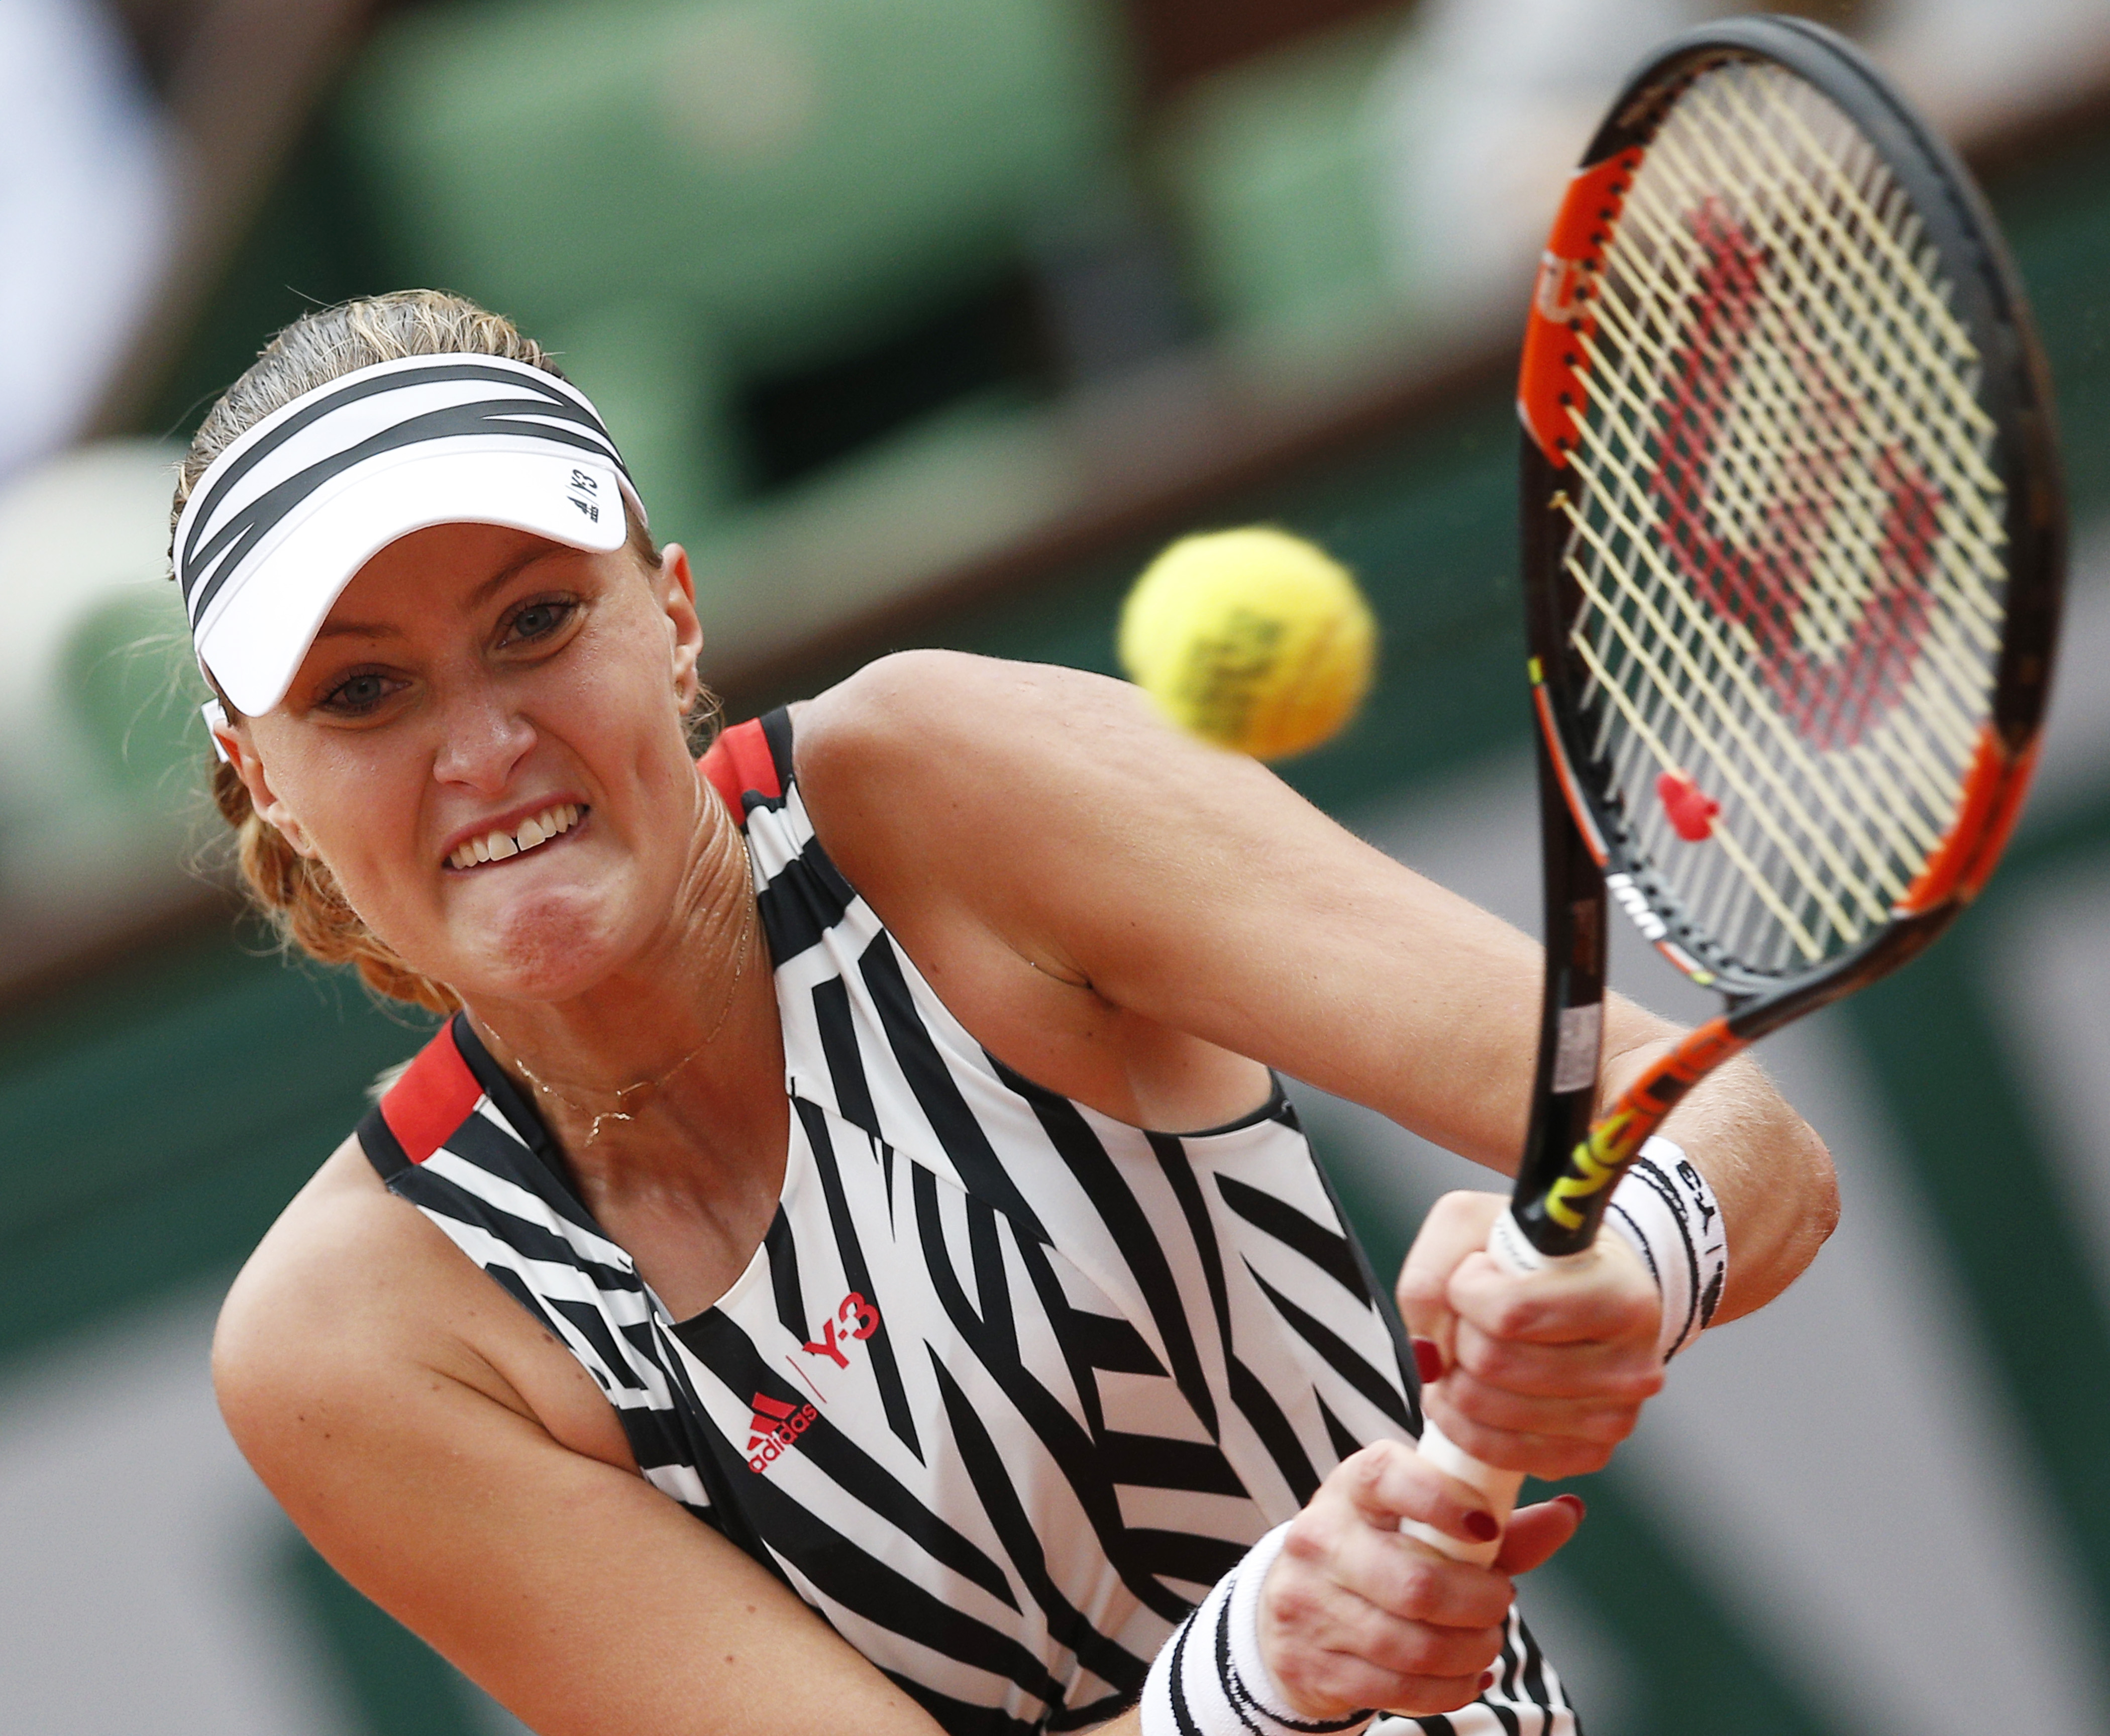 France's Kristina Mladenovic returns in the third round match of the French Open tennis tournament against Serena Williams of the U.S.  at the Roland Garros stadium in Paris, France, Saturday, May 28, 2016. (AP Photo/Christophe Ena)